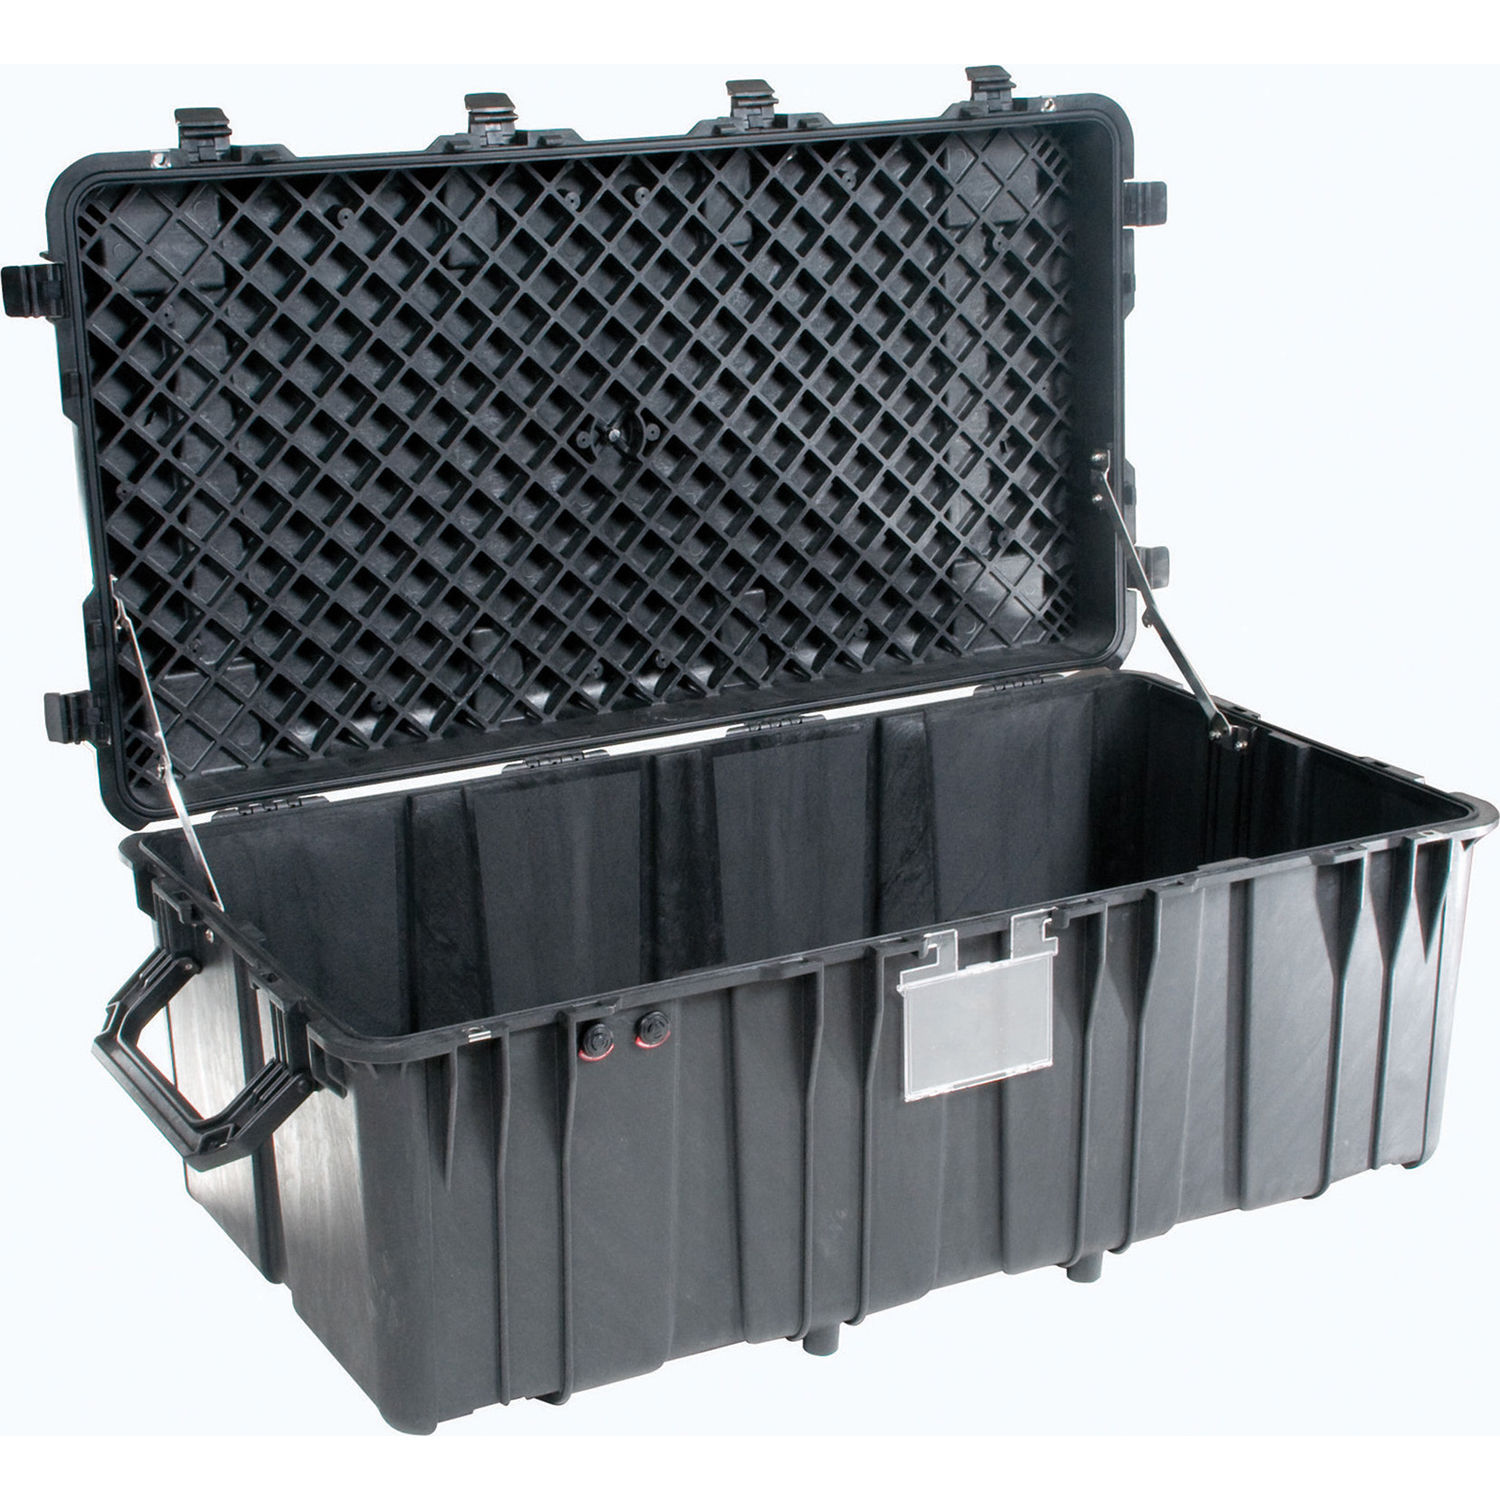 Pelican Protector 0550 0550-001-110 Transport Shipping Case